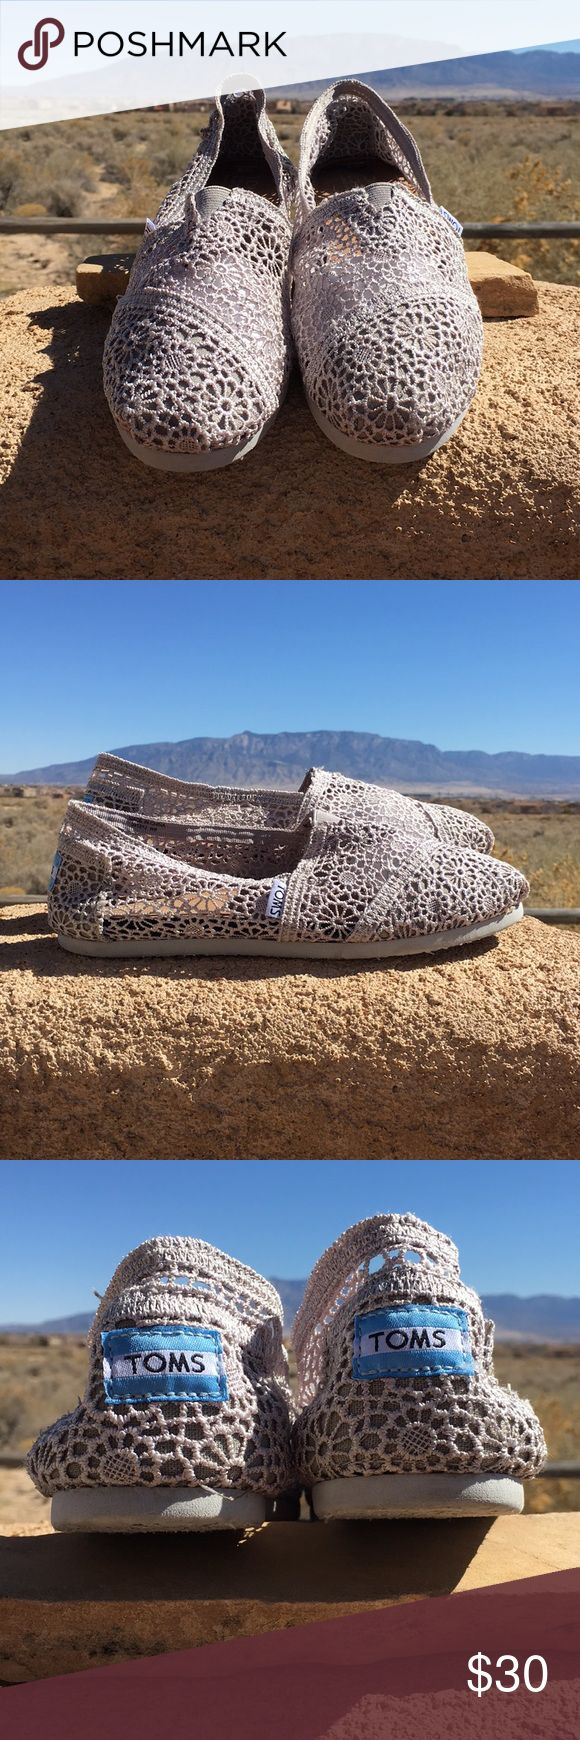 Taupe sheer lace TOMS. Taupe sheer lace TOMS. Size 8M. Worn once. Shoes stuffed with tissue in toes in first image. Slight gum from original tag on insole of left shoe. Odor free. Smoke/pet free home. Toms Shoes Flats & Loafers